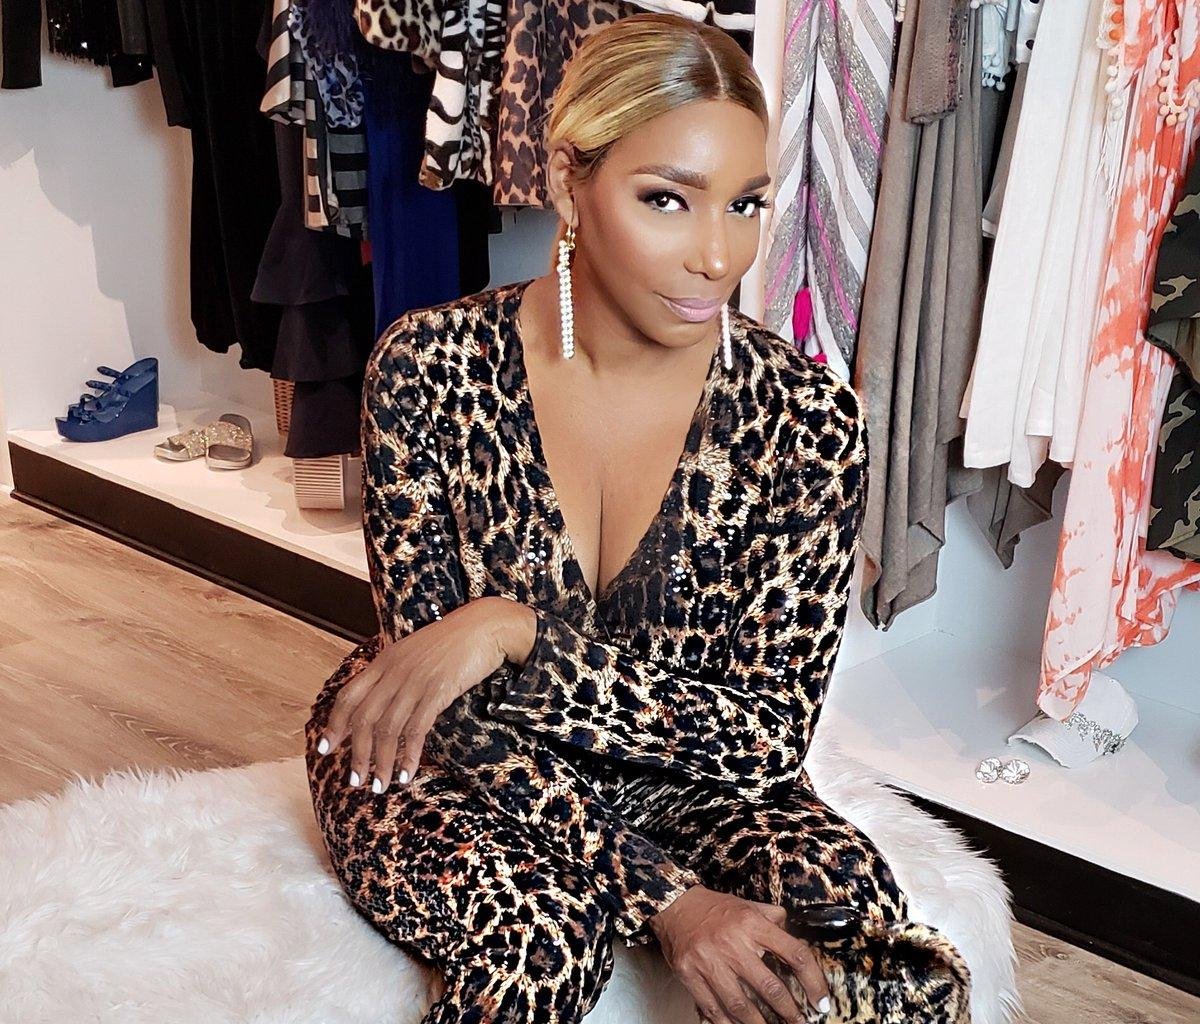 NeNe Leakes Announces The 'Girls Nite Out Comedy Show' On March 9